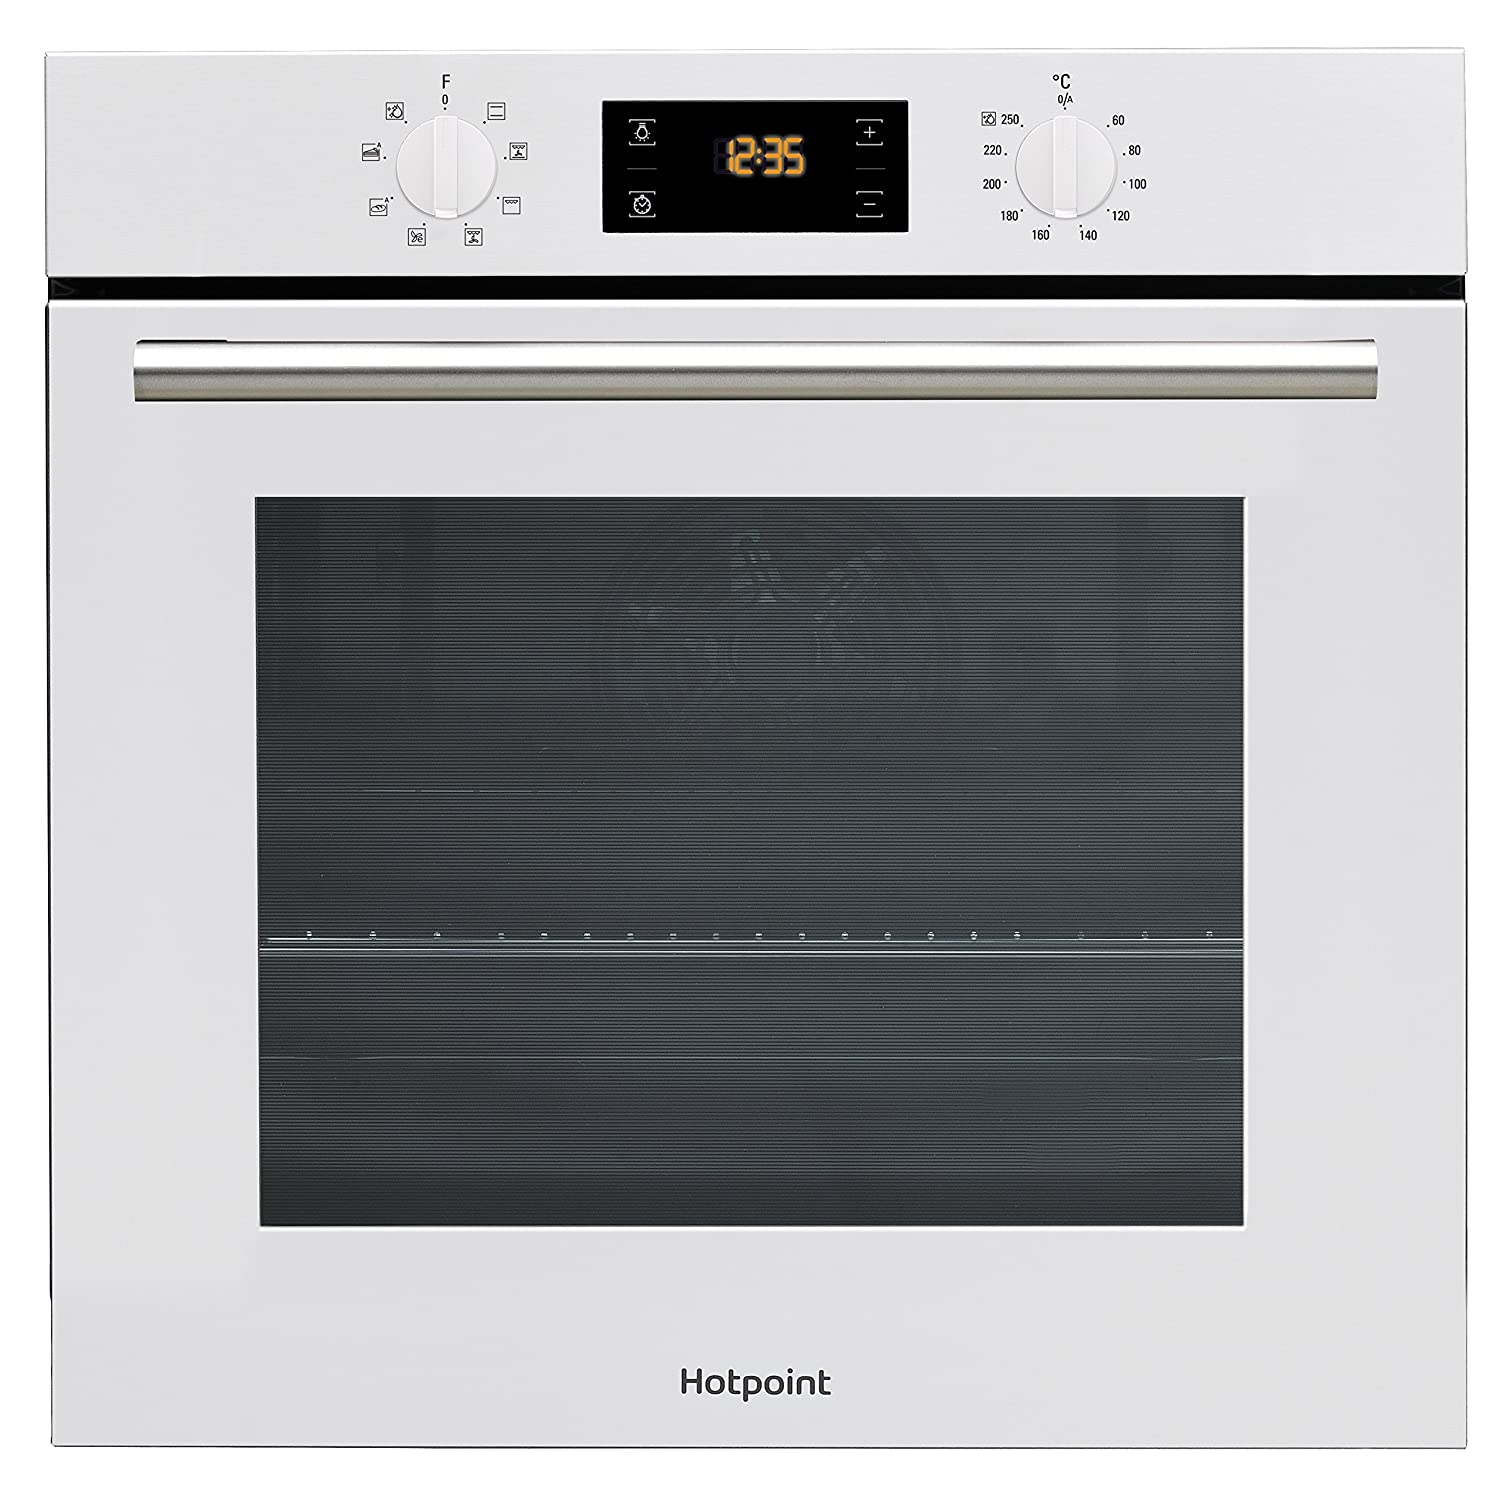 Hotpoint Class 2 SA2 540 H WH Built-in Oven - White SA2540HWH